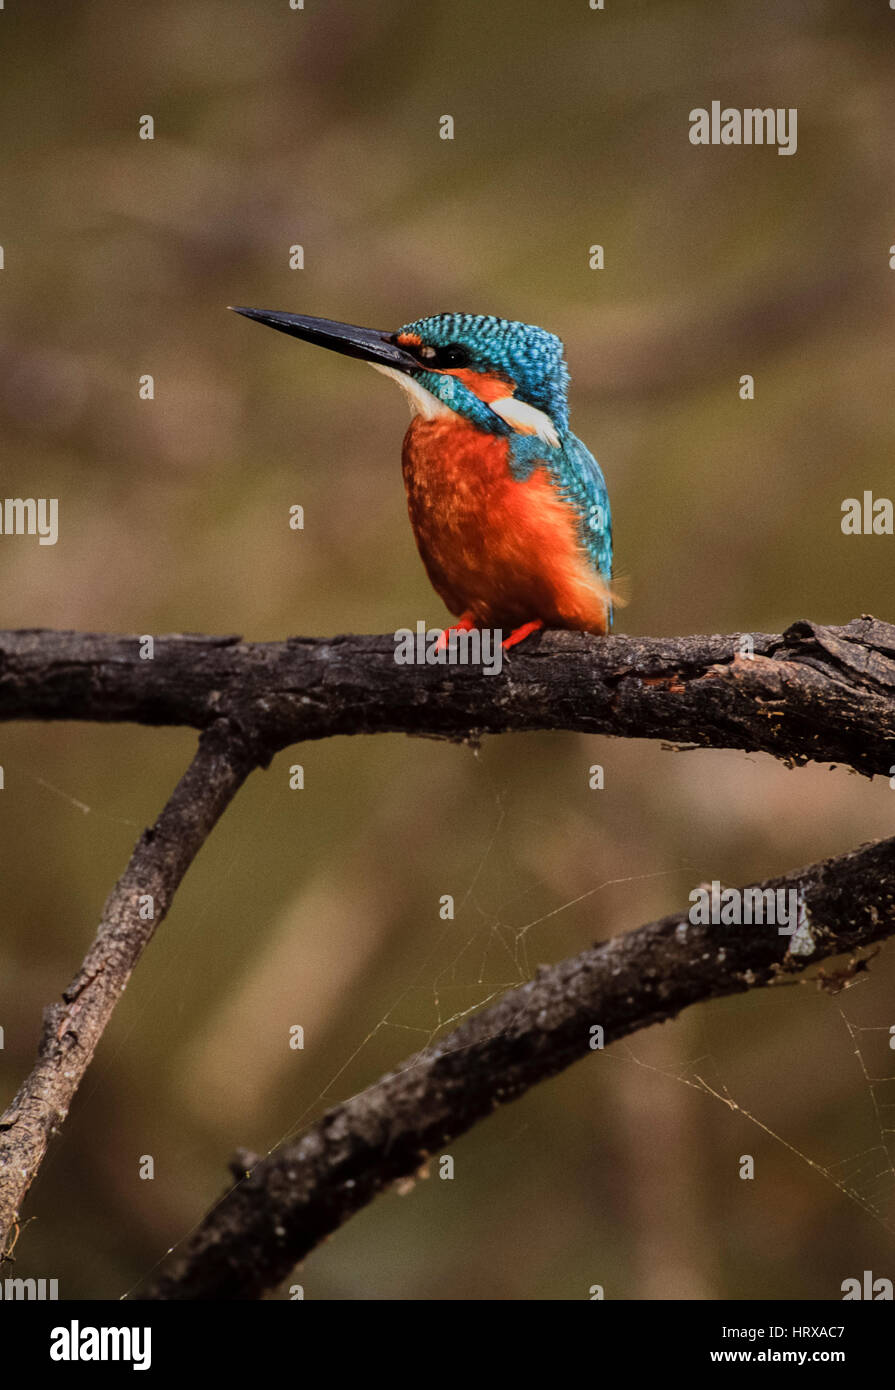 Common kingfisher, (Alcedo atthis), perched on branch, Keoladeo Ghana National Park, Bharatpur, Rajasthan, India - Stock Image